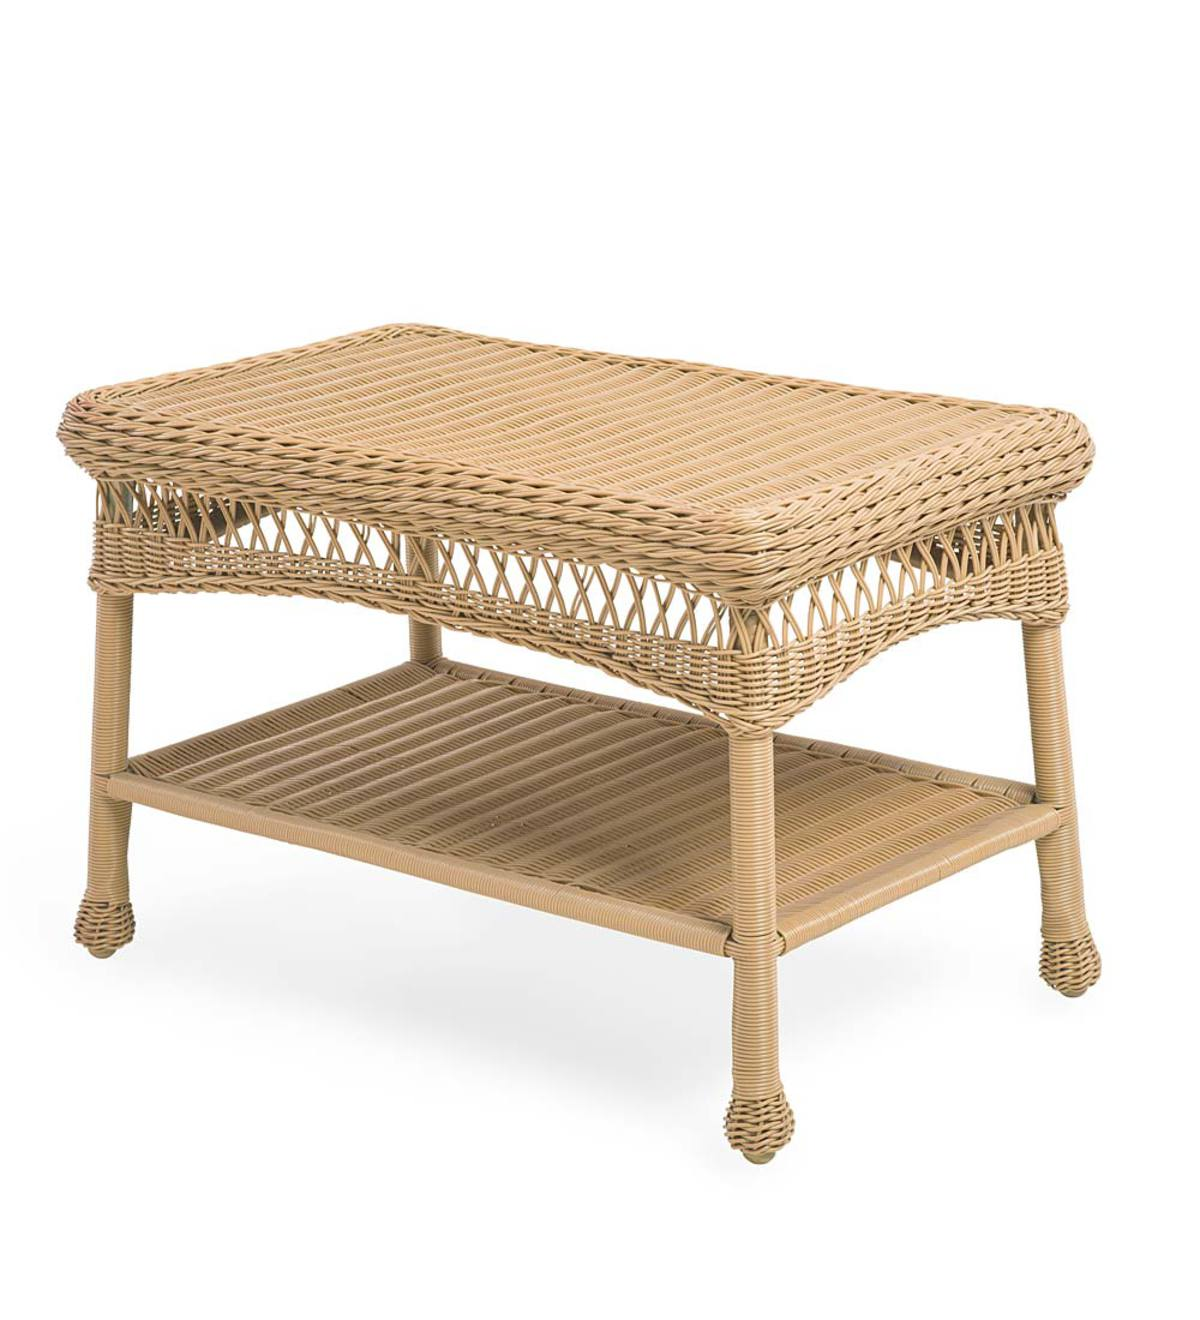 Easy Care Resin Wicker Coffee Table